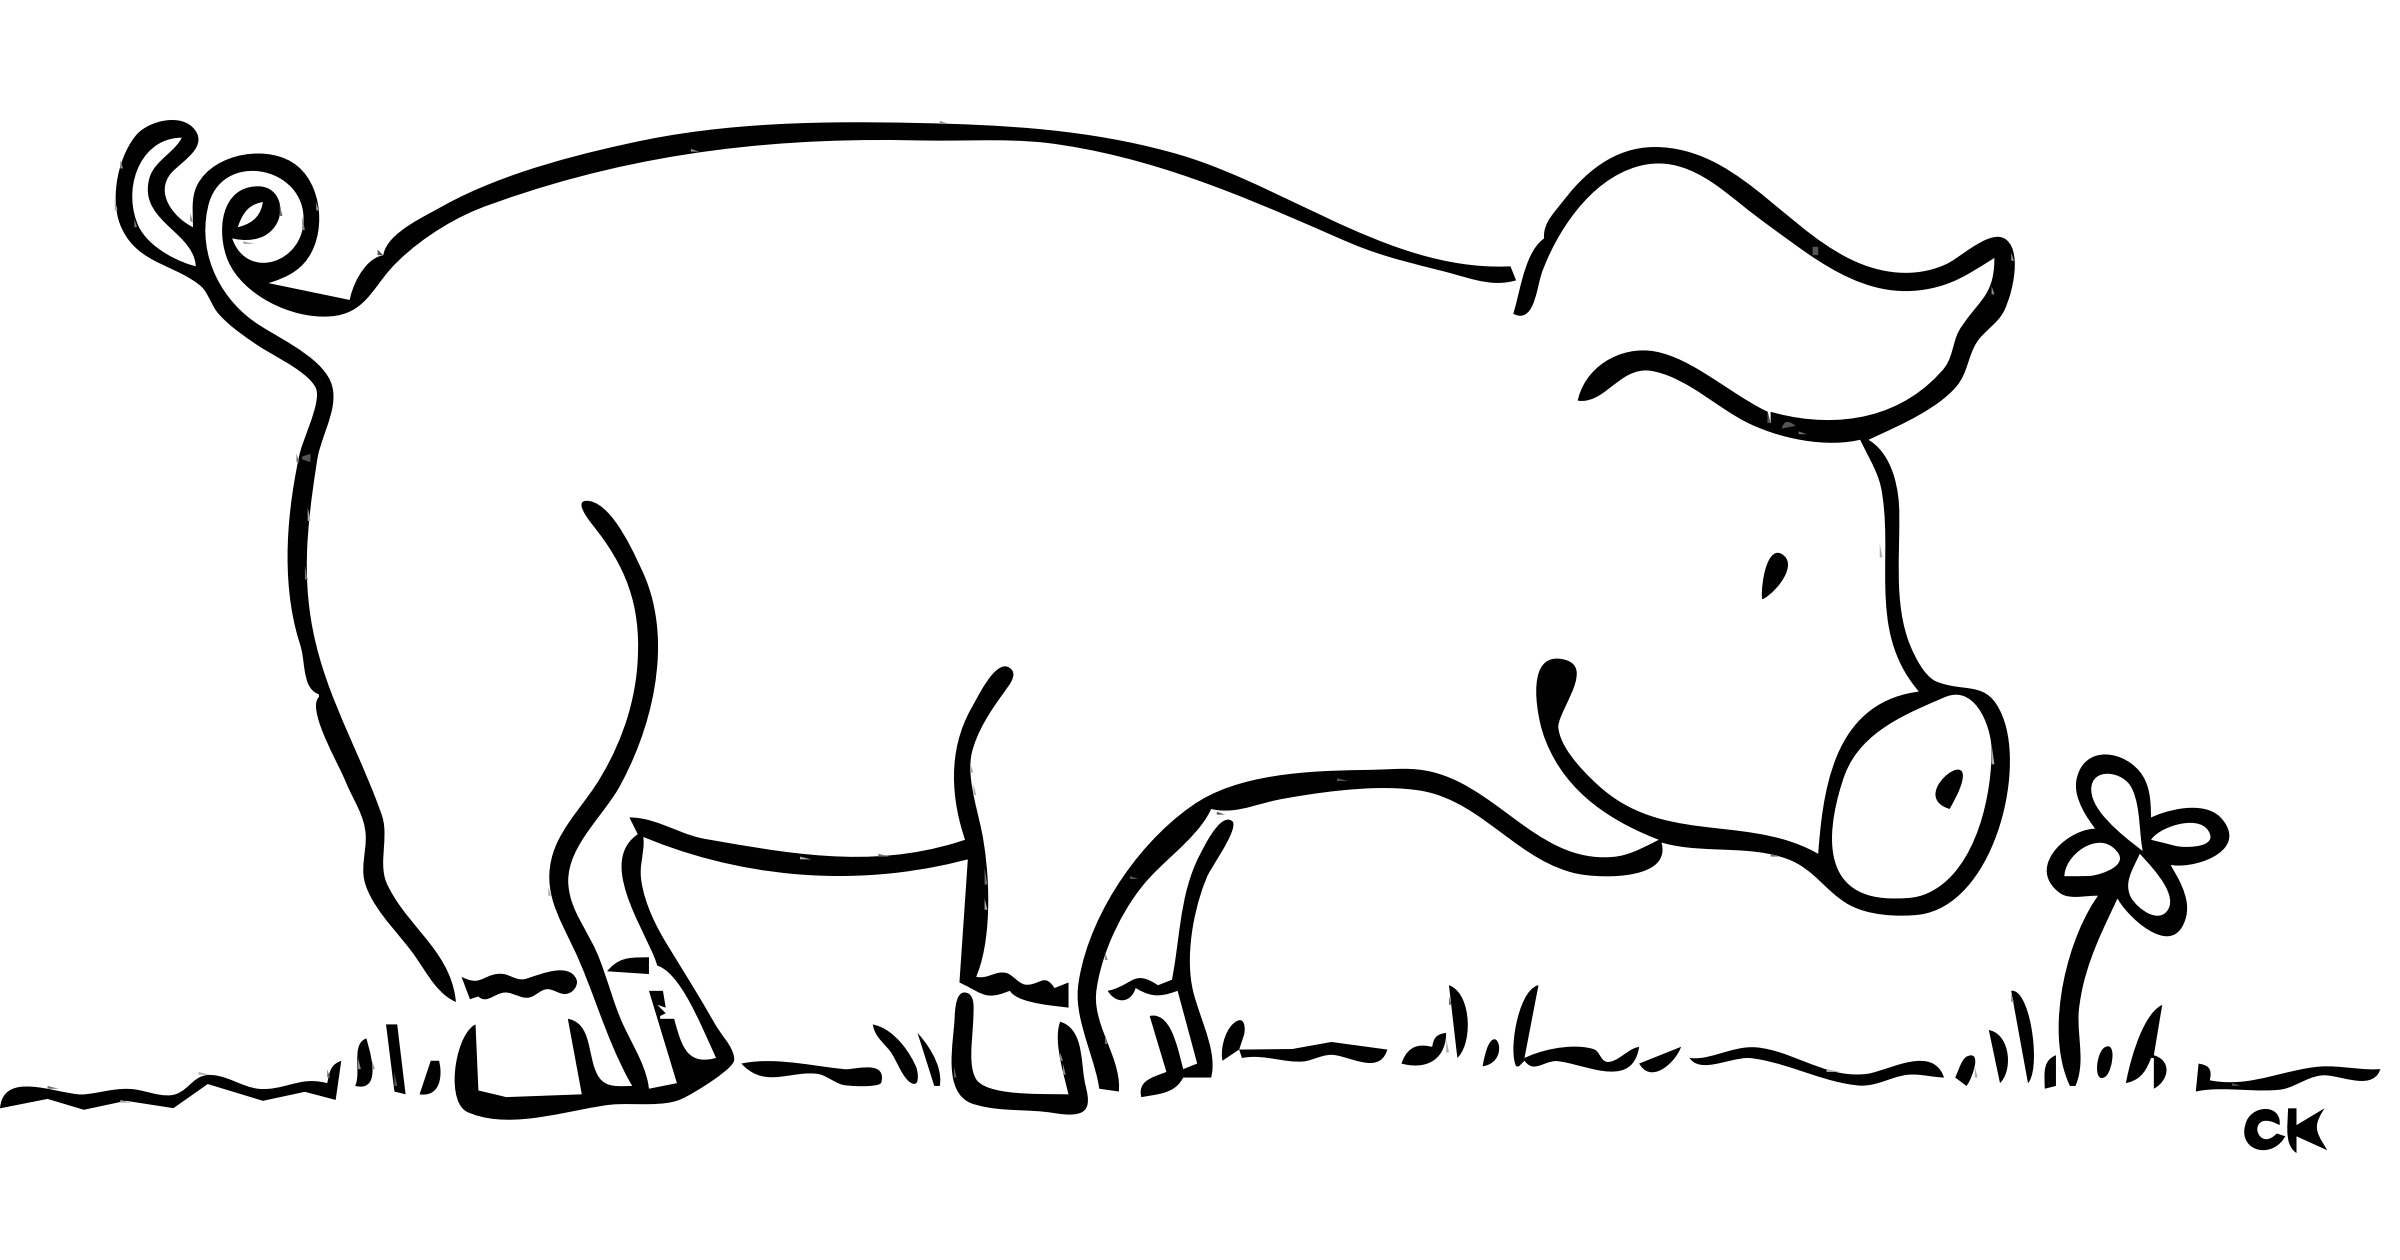 Group of pigs clipart black and white svg royalty free library Black And White Clipart Of Pig svg royalty free library